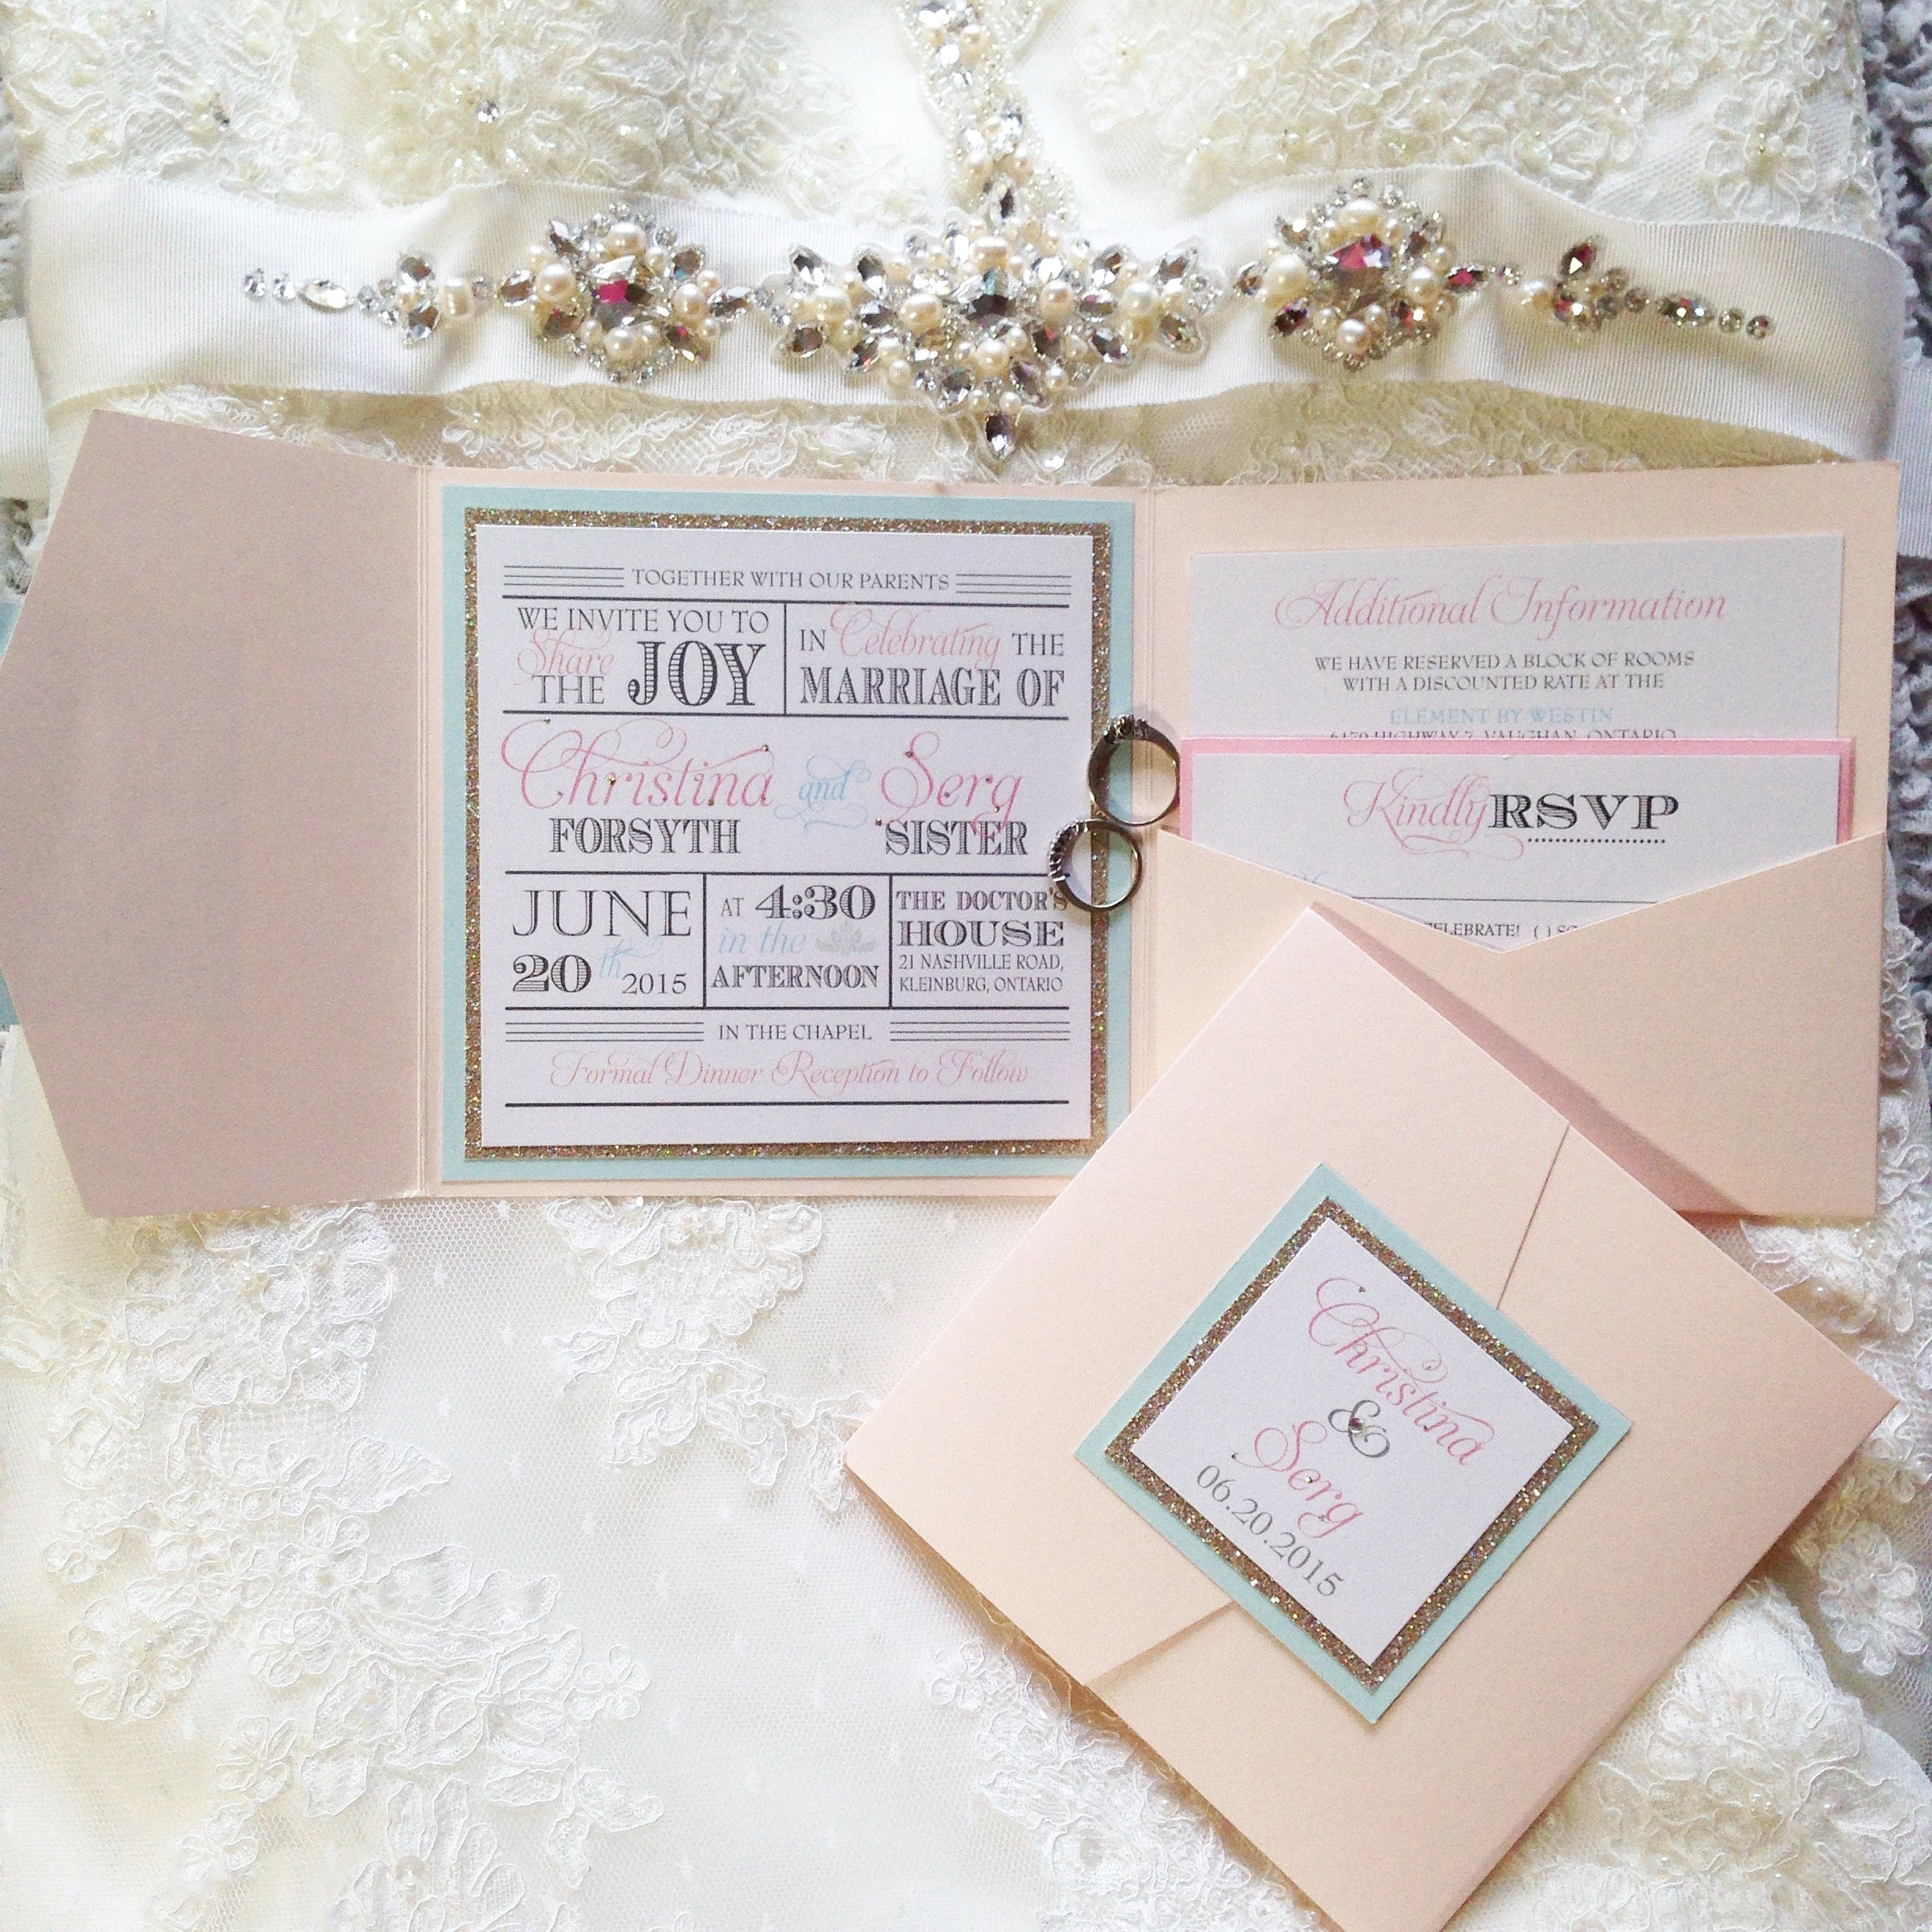 invitation etiquette the polka dot paper shop When Is It Appropriate To Send Out Wedding Invitations when should we send out our wedding invitations? traditionally in canada we send out wedding invitations 3 months prior to the wedding when is it appropriate to send out wedding invitations